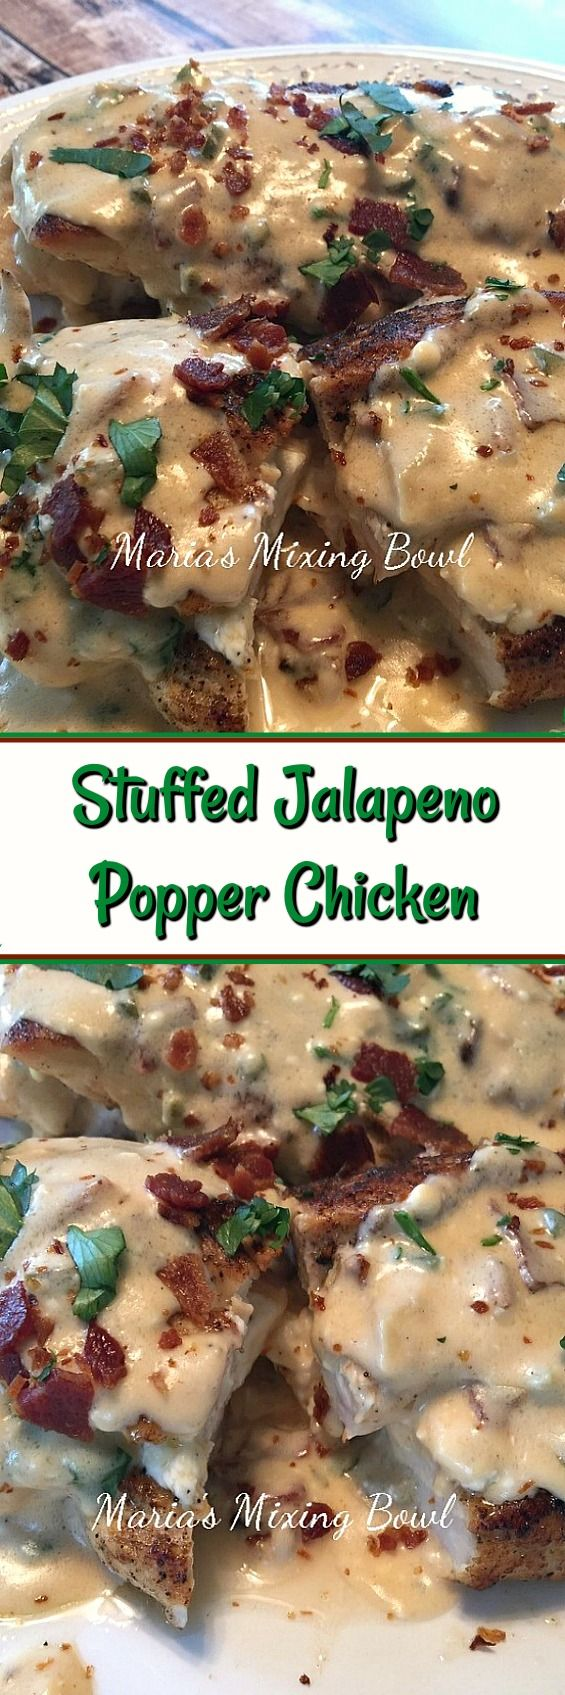 Stuffed Jalapeno Popper Chicken - Low carb never tasted so good! This quick and easy Stuffed Jalapeno Popper Chicken will become one of your favorite meals! #stuffed #jalapeno #popper #chicken #lowcarb #keto #delicious